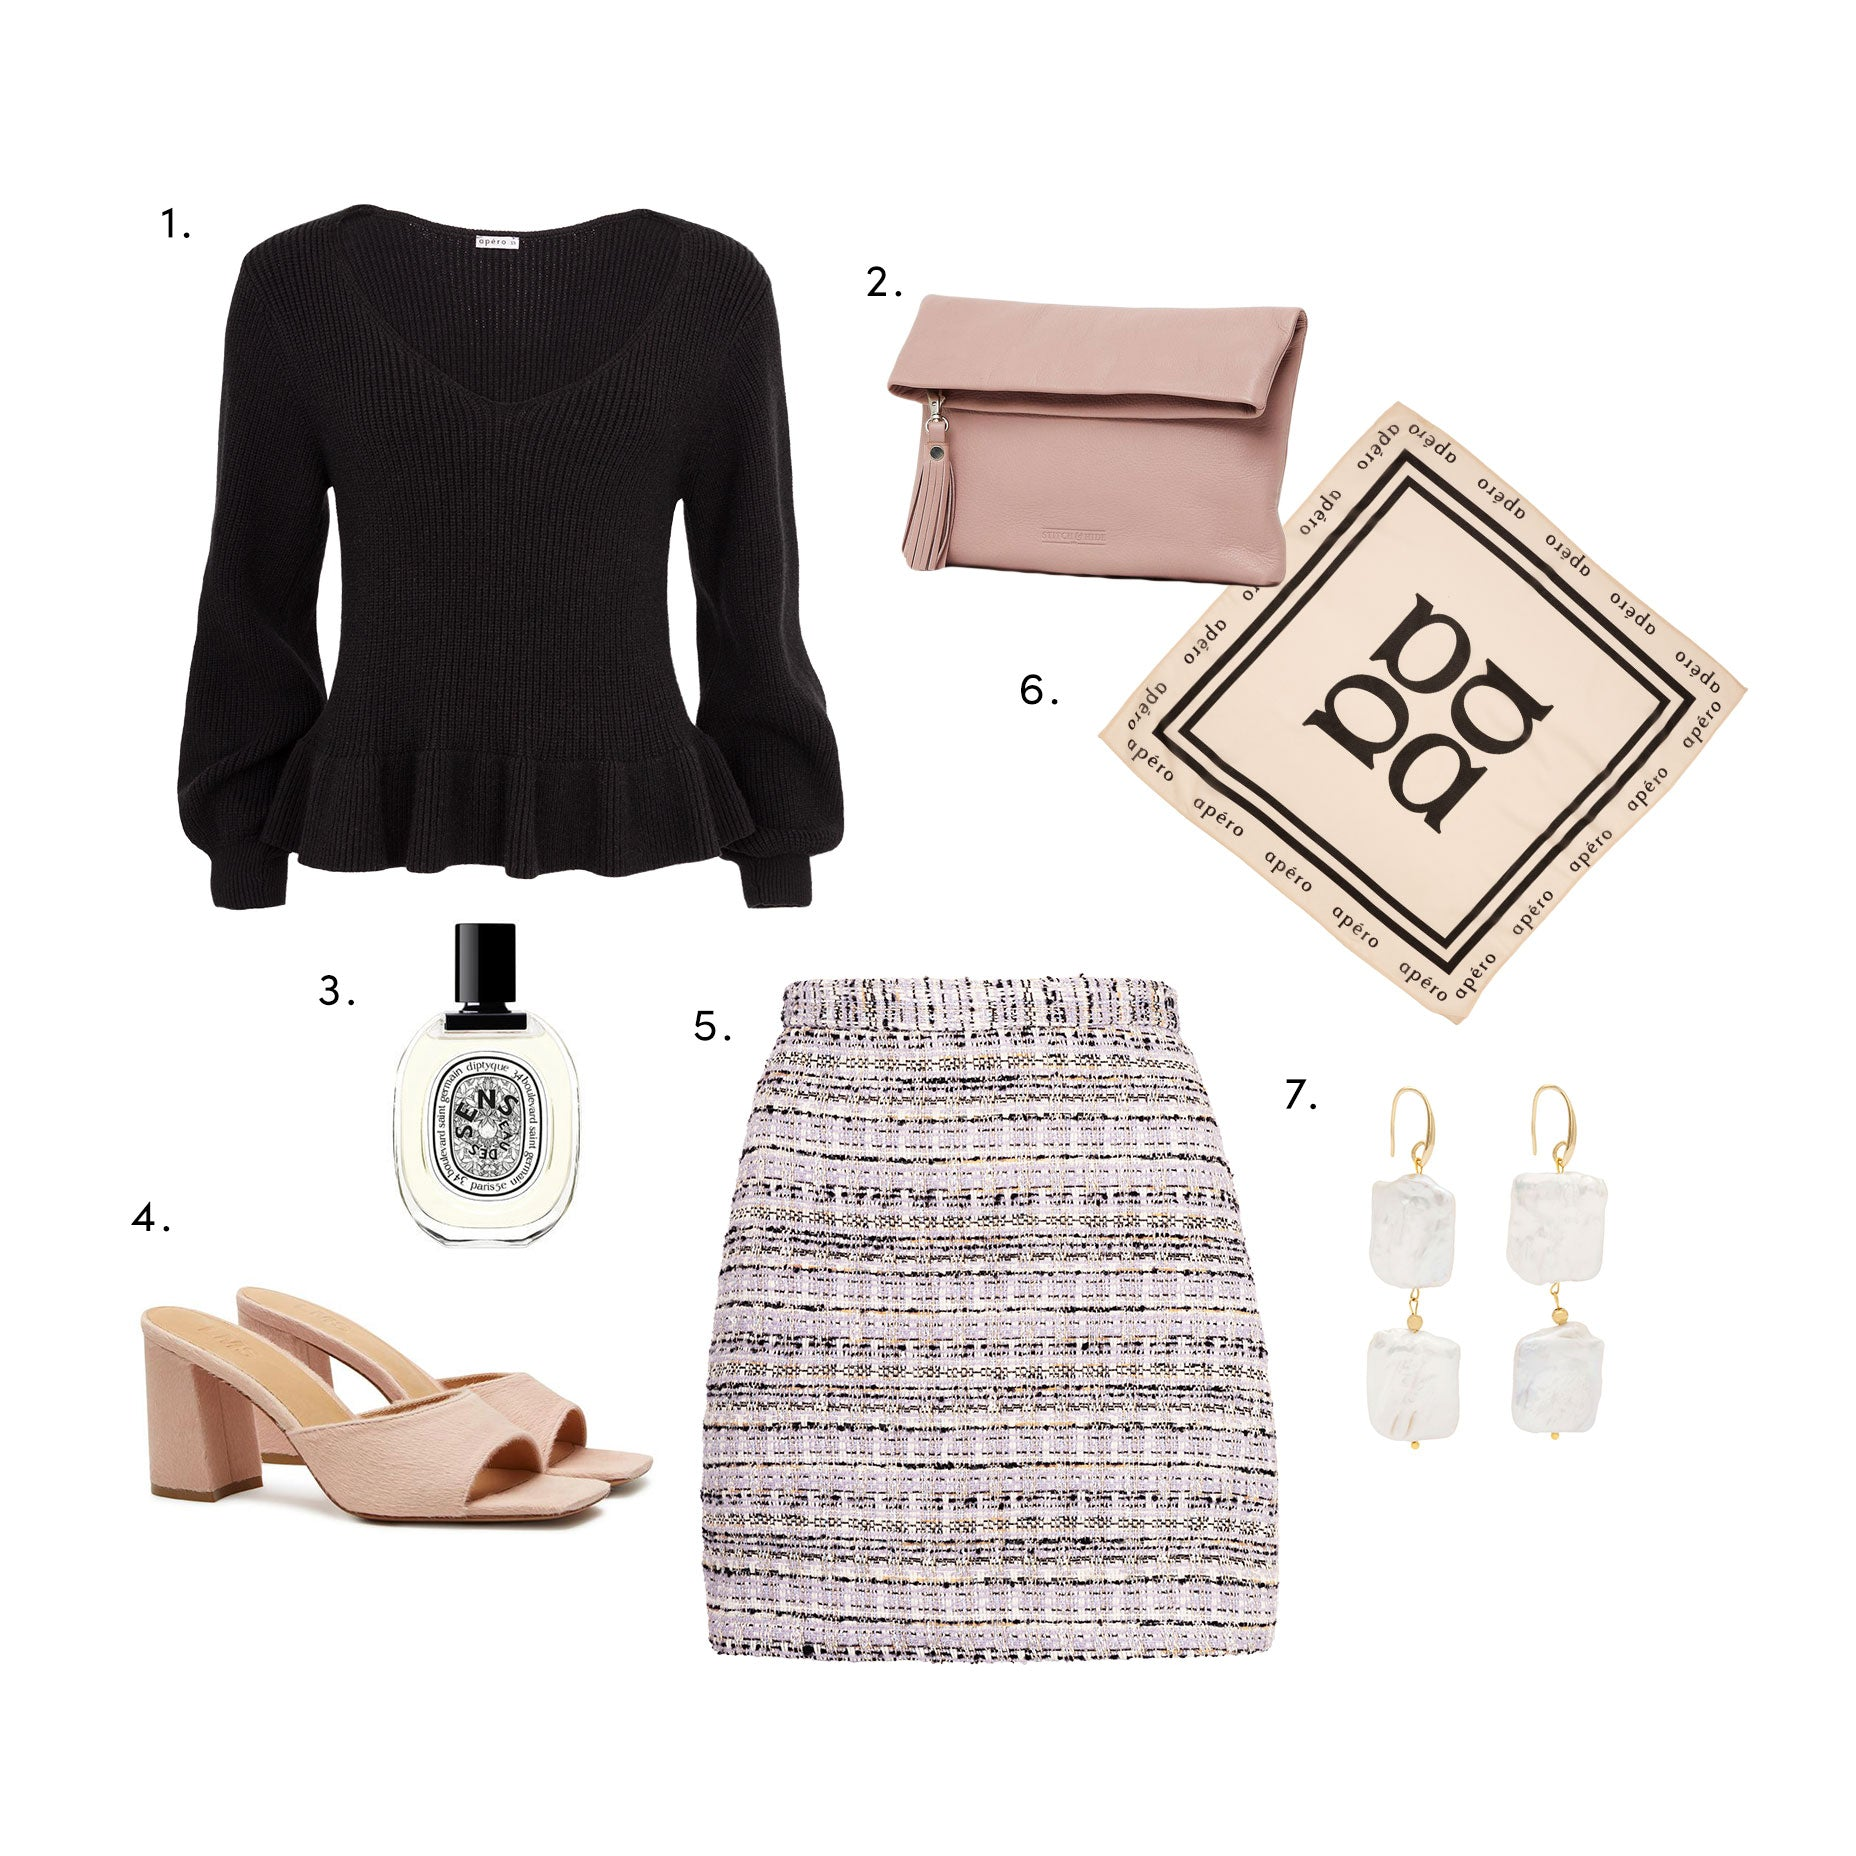 apero knit jumper, jacquard skirt and accessories